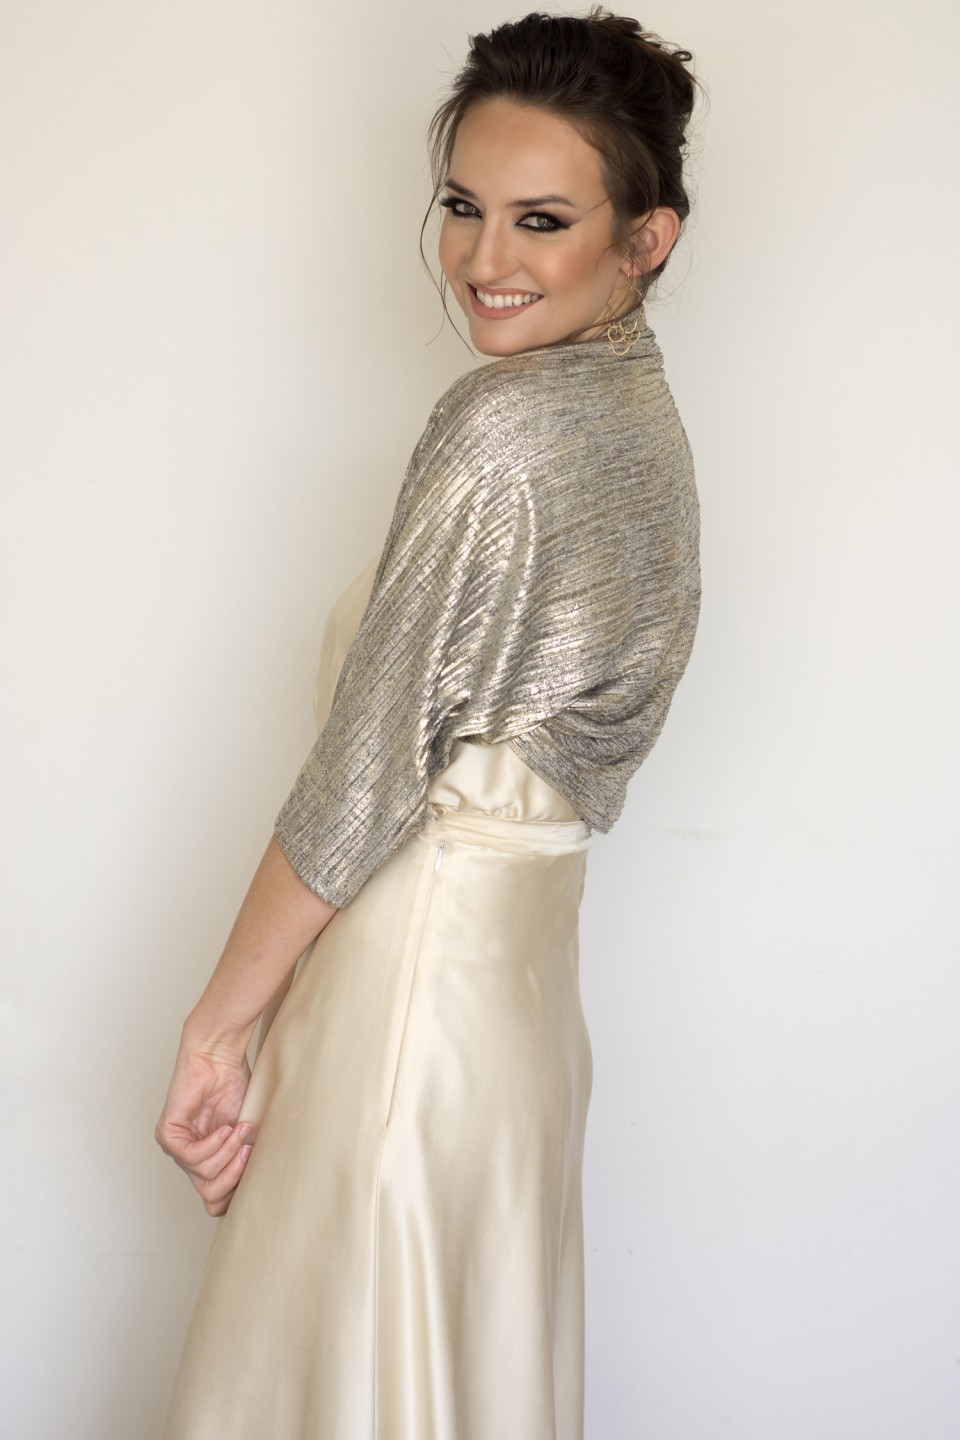 Pleated gold bolero jacket